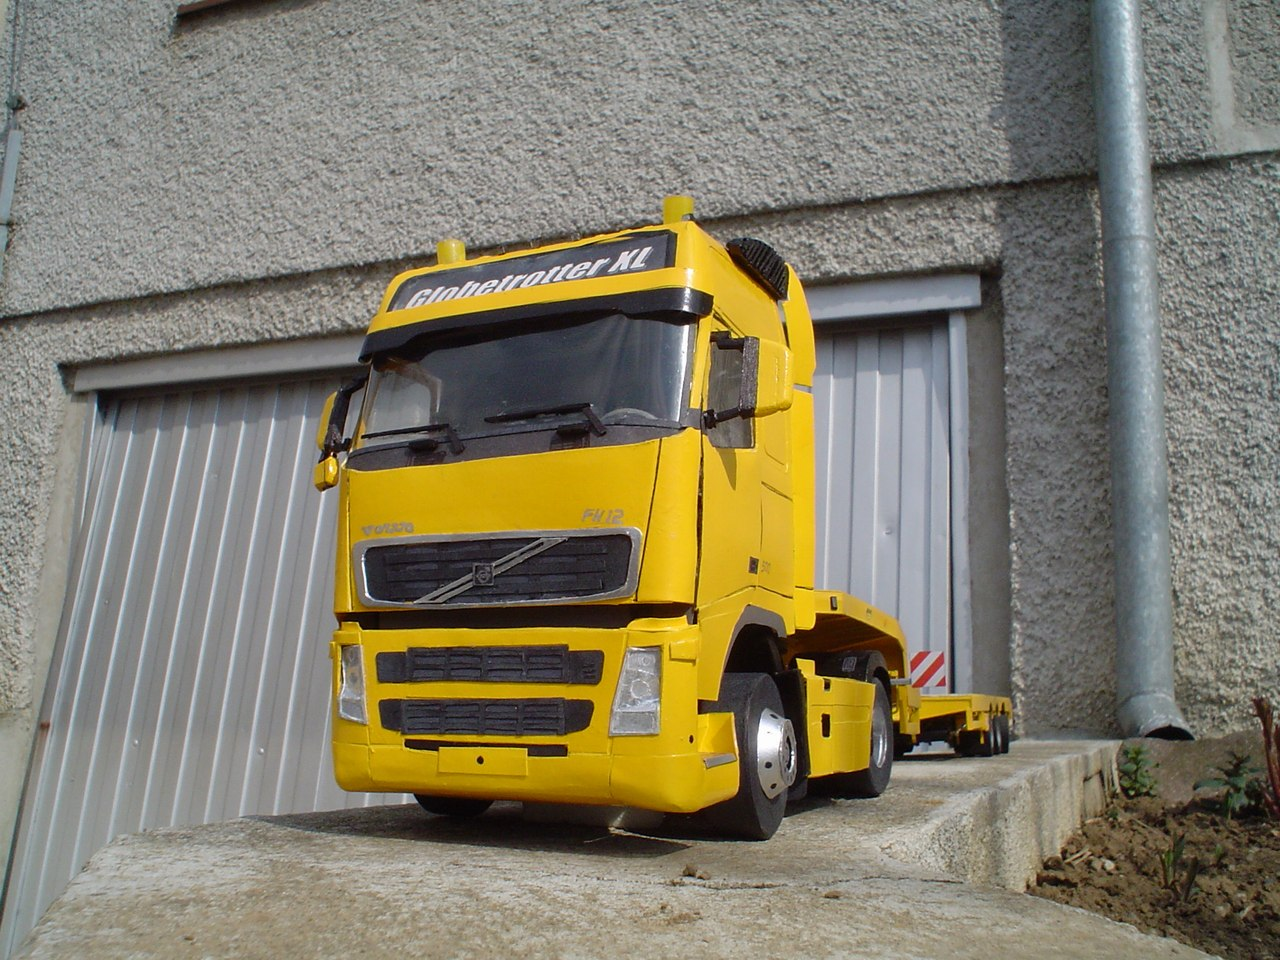 Heavy Transport Machinery Models By Peter Jankovic Truck 2000 Volvo Electrical Wiring Wheel Nuts Tires With Tread And Signs Detailed Chassis Of The Trailer Air There Is A Functioning Extension Length